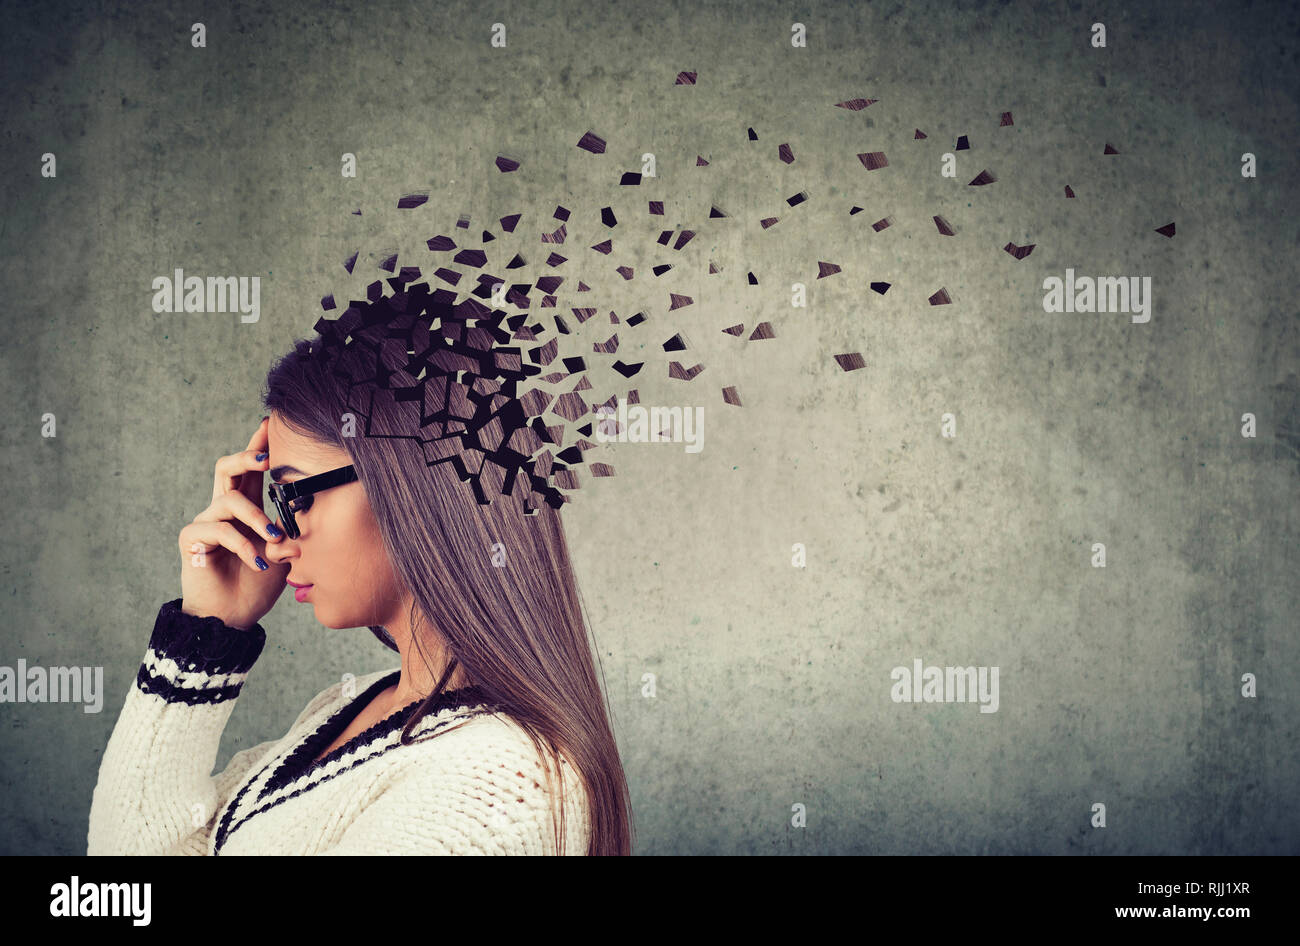 Memory loss due to dementia or brain damage. Side profile of a woman losing parts of head as symbol of decreased mind function. - Stock Image